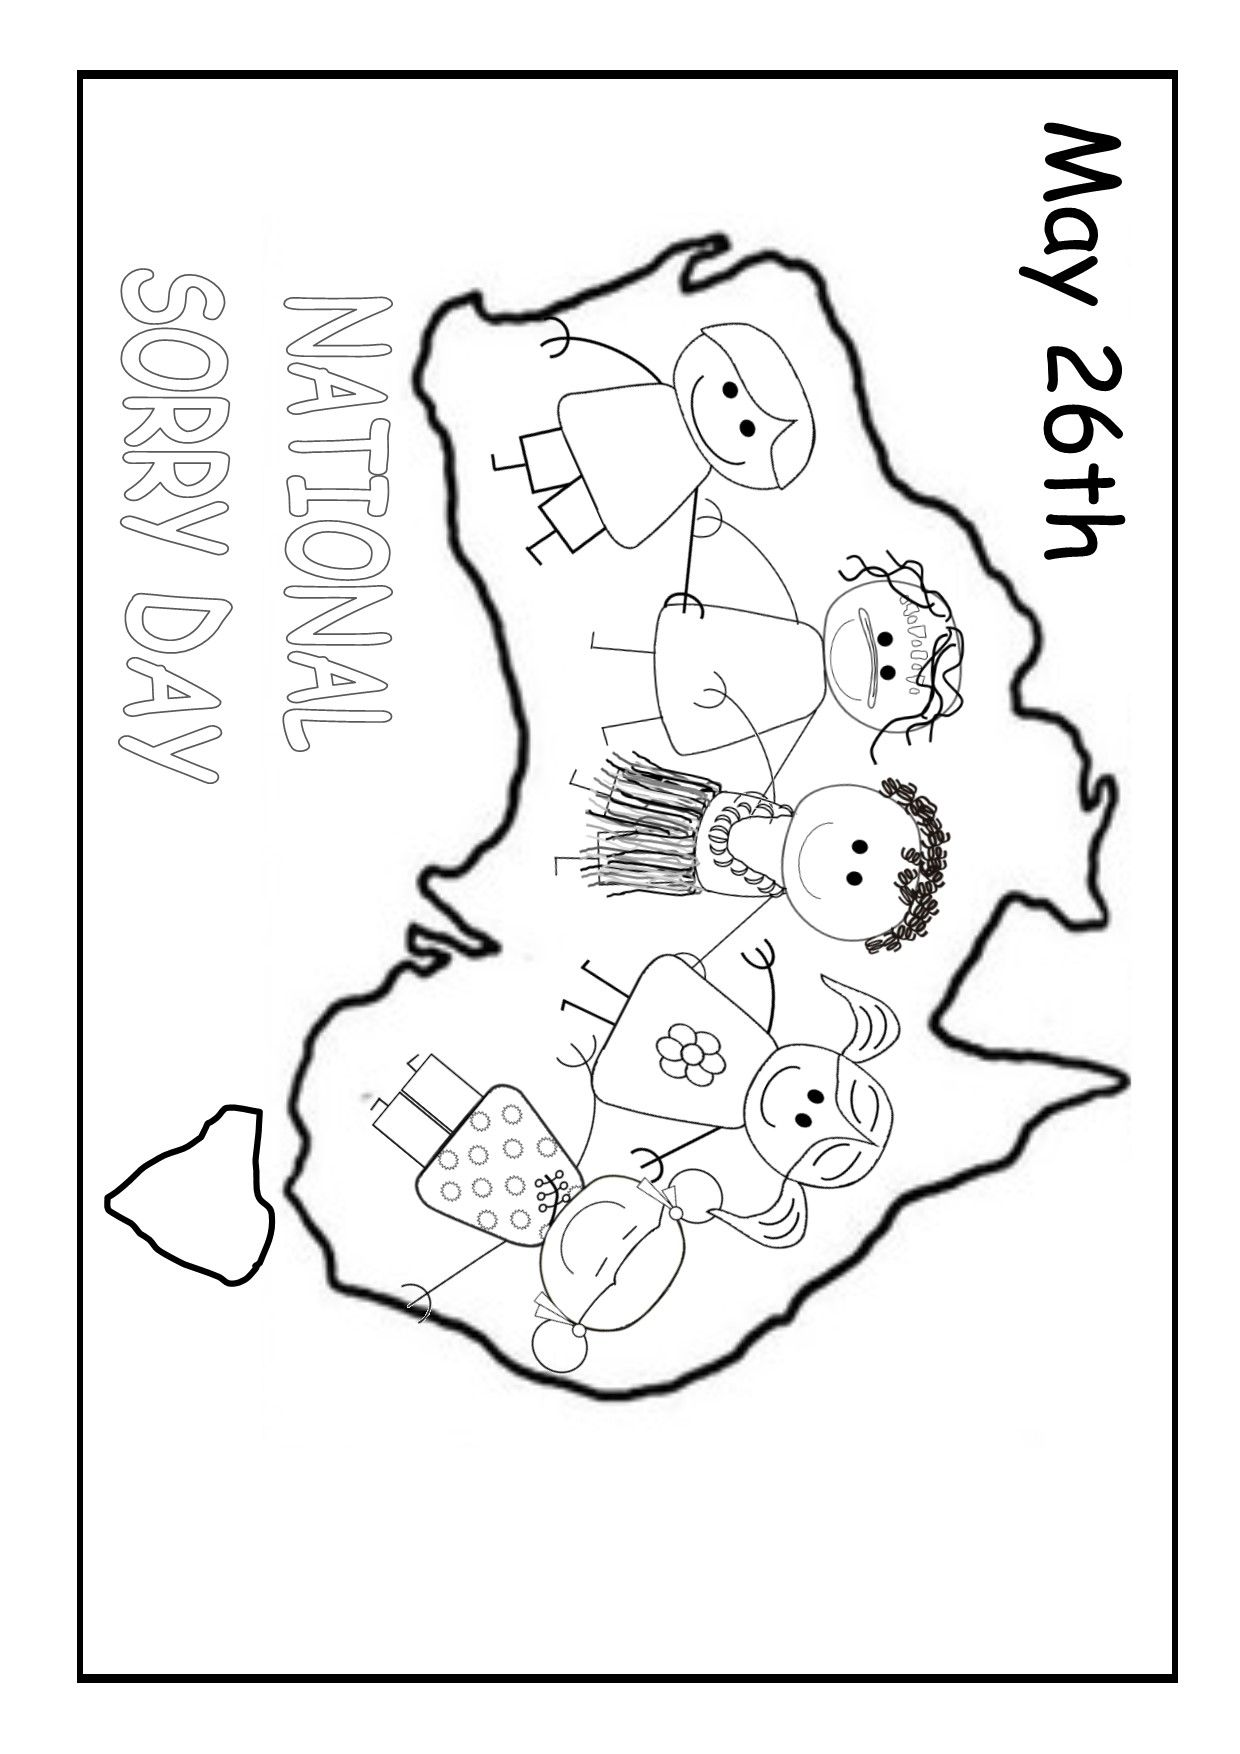 National Sorry Day Australia Colouring